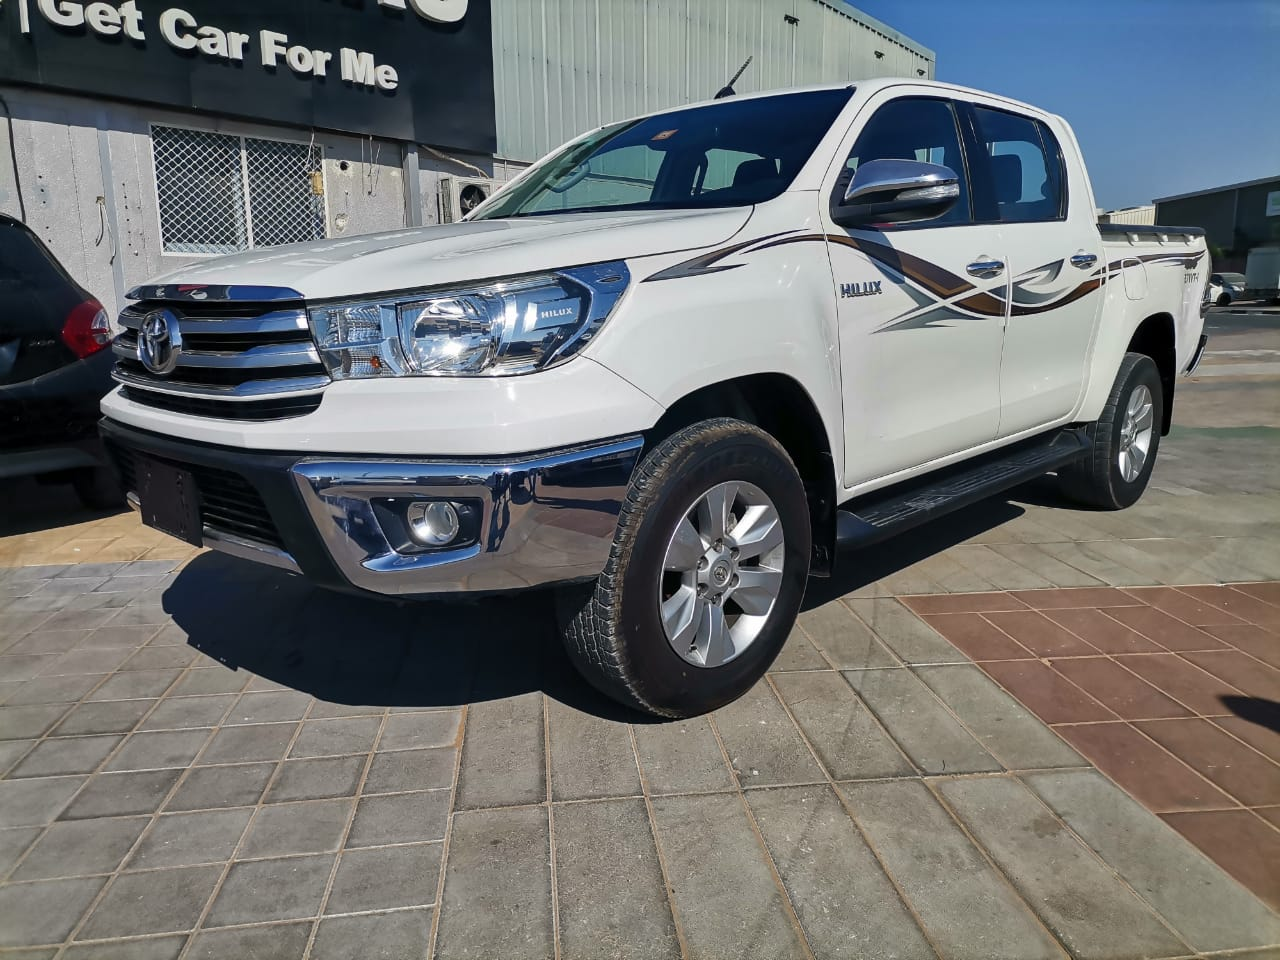 Used Toyota Hilux (2.7L Double Cab) 2017 For Sale In Dubai